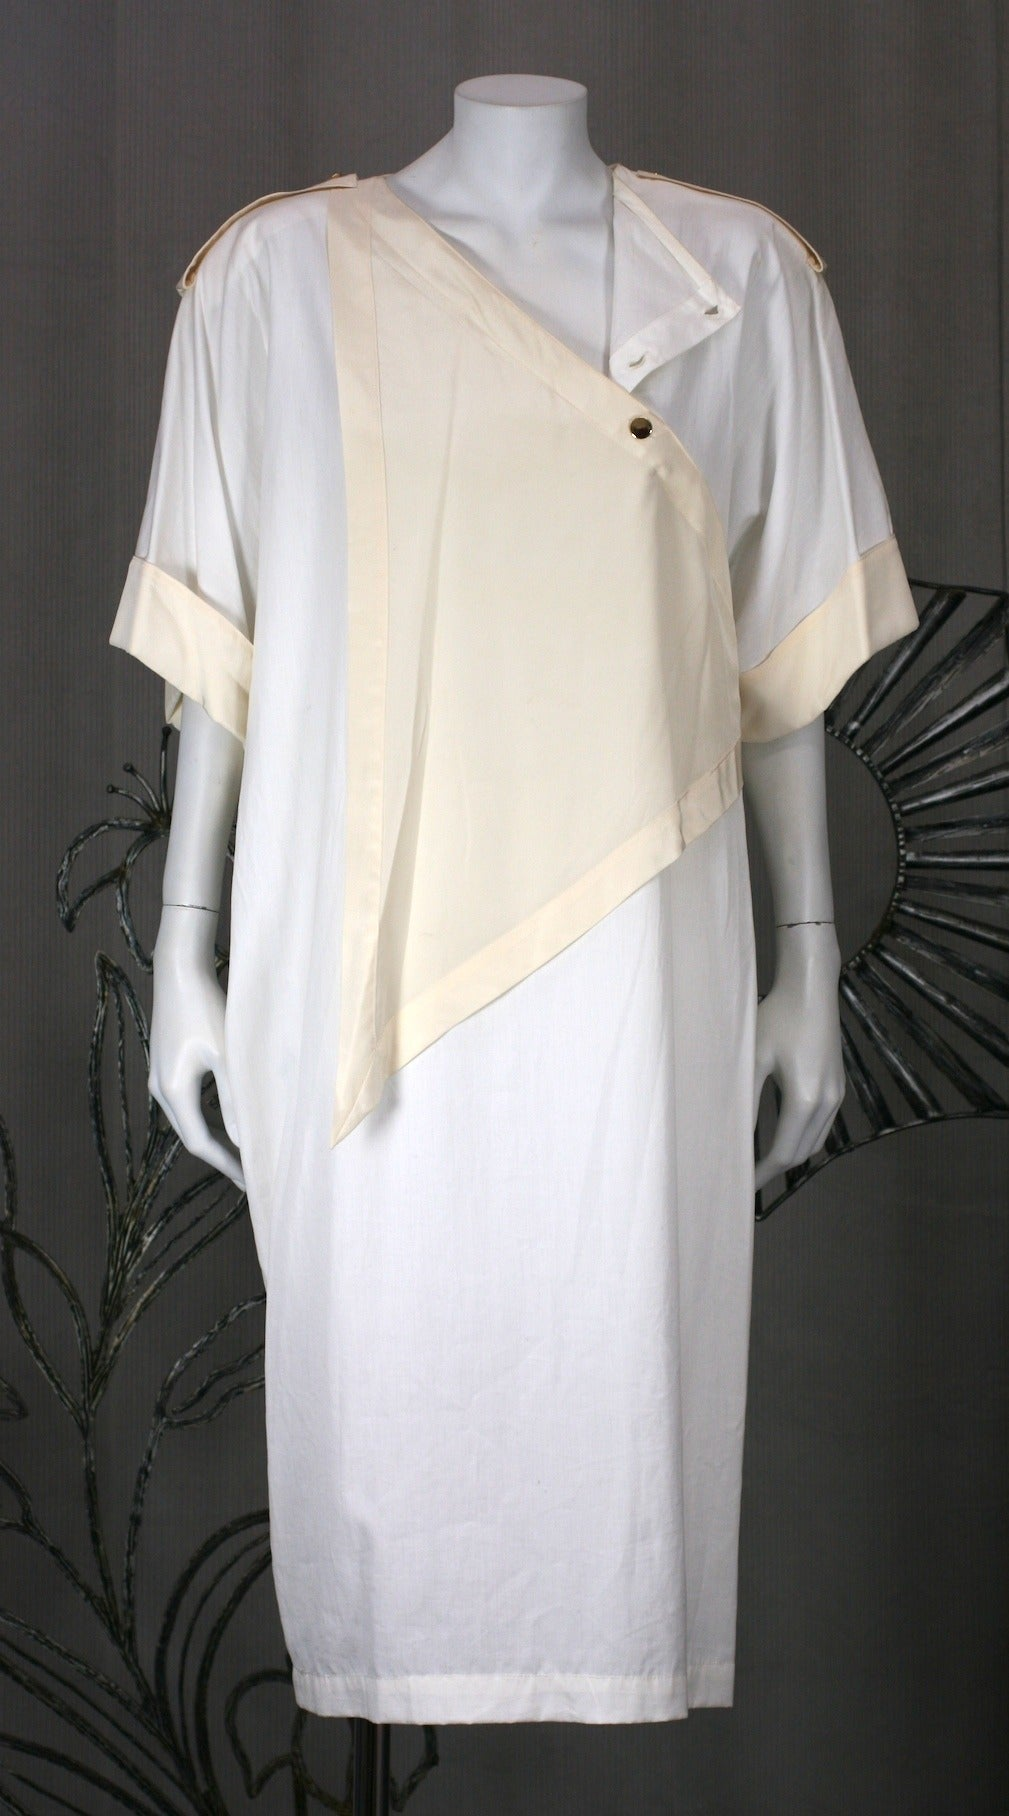 Genny's cotton poplin summer dress with cream silk crepe de chine scarf panel and trim by Gianni Versace. Straight cut dress falls from large shoulder pads. Assymetric neckline opens with hidden snaps. 1980's Italy. Excellent condition.